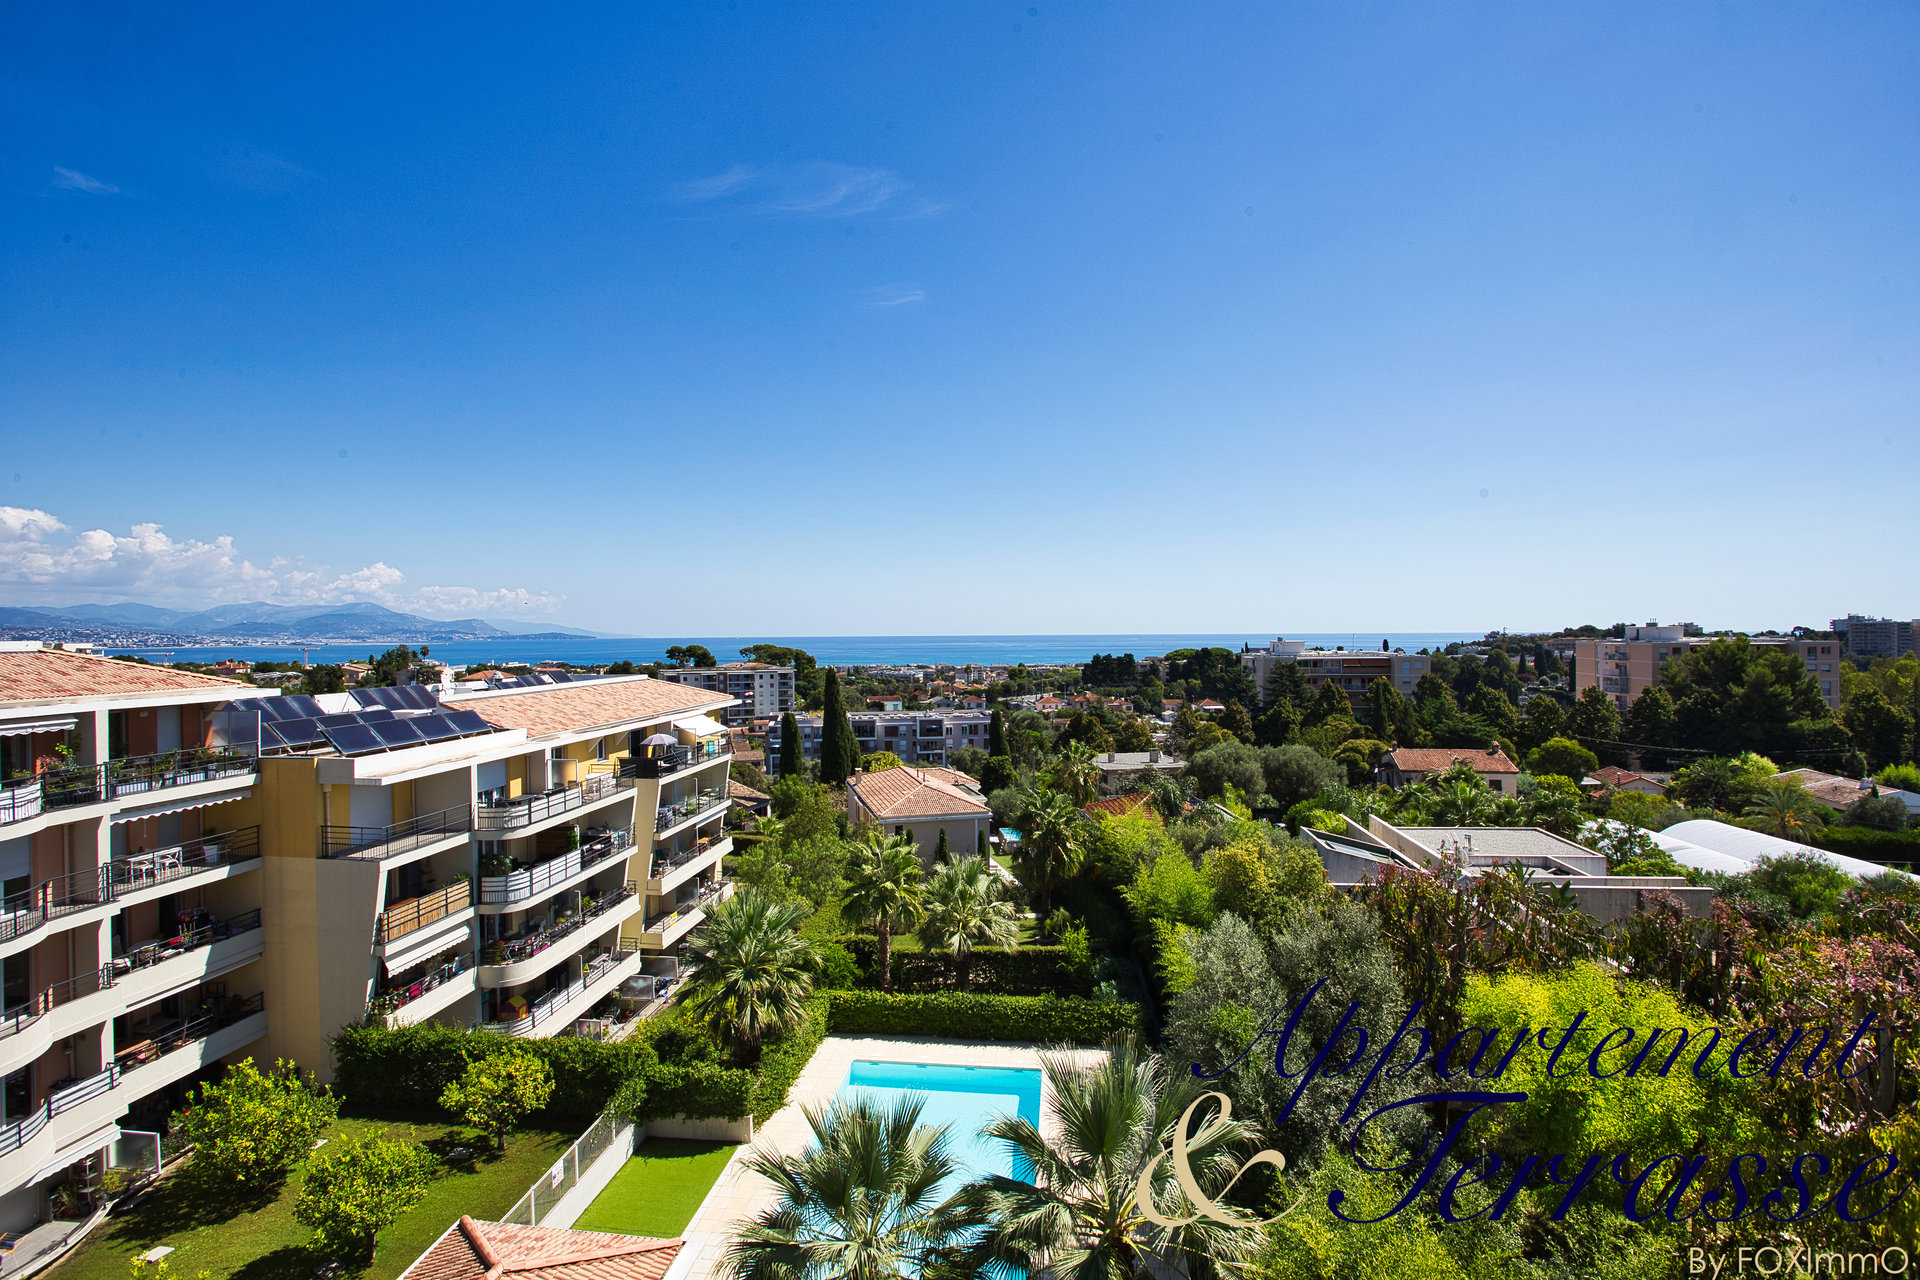 ANTIBES Near Sophia 3-room apartment 64m² panoramic sea view